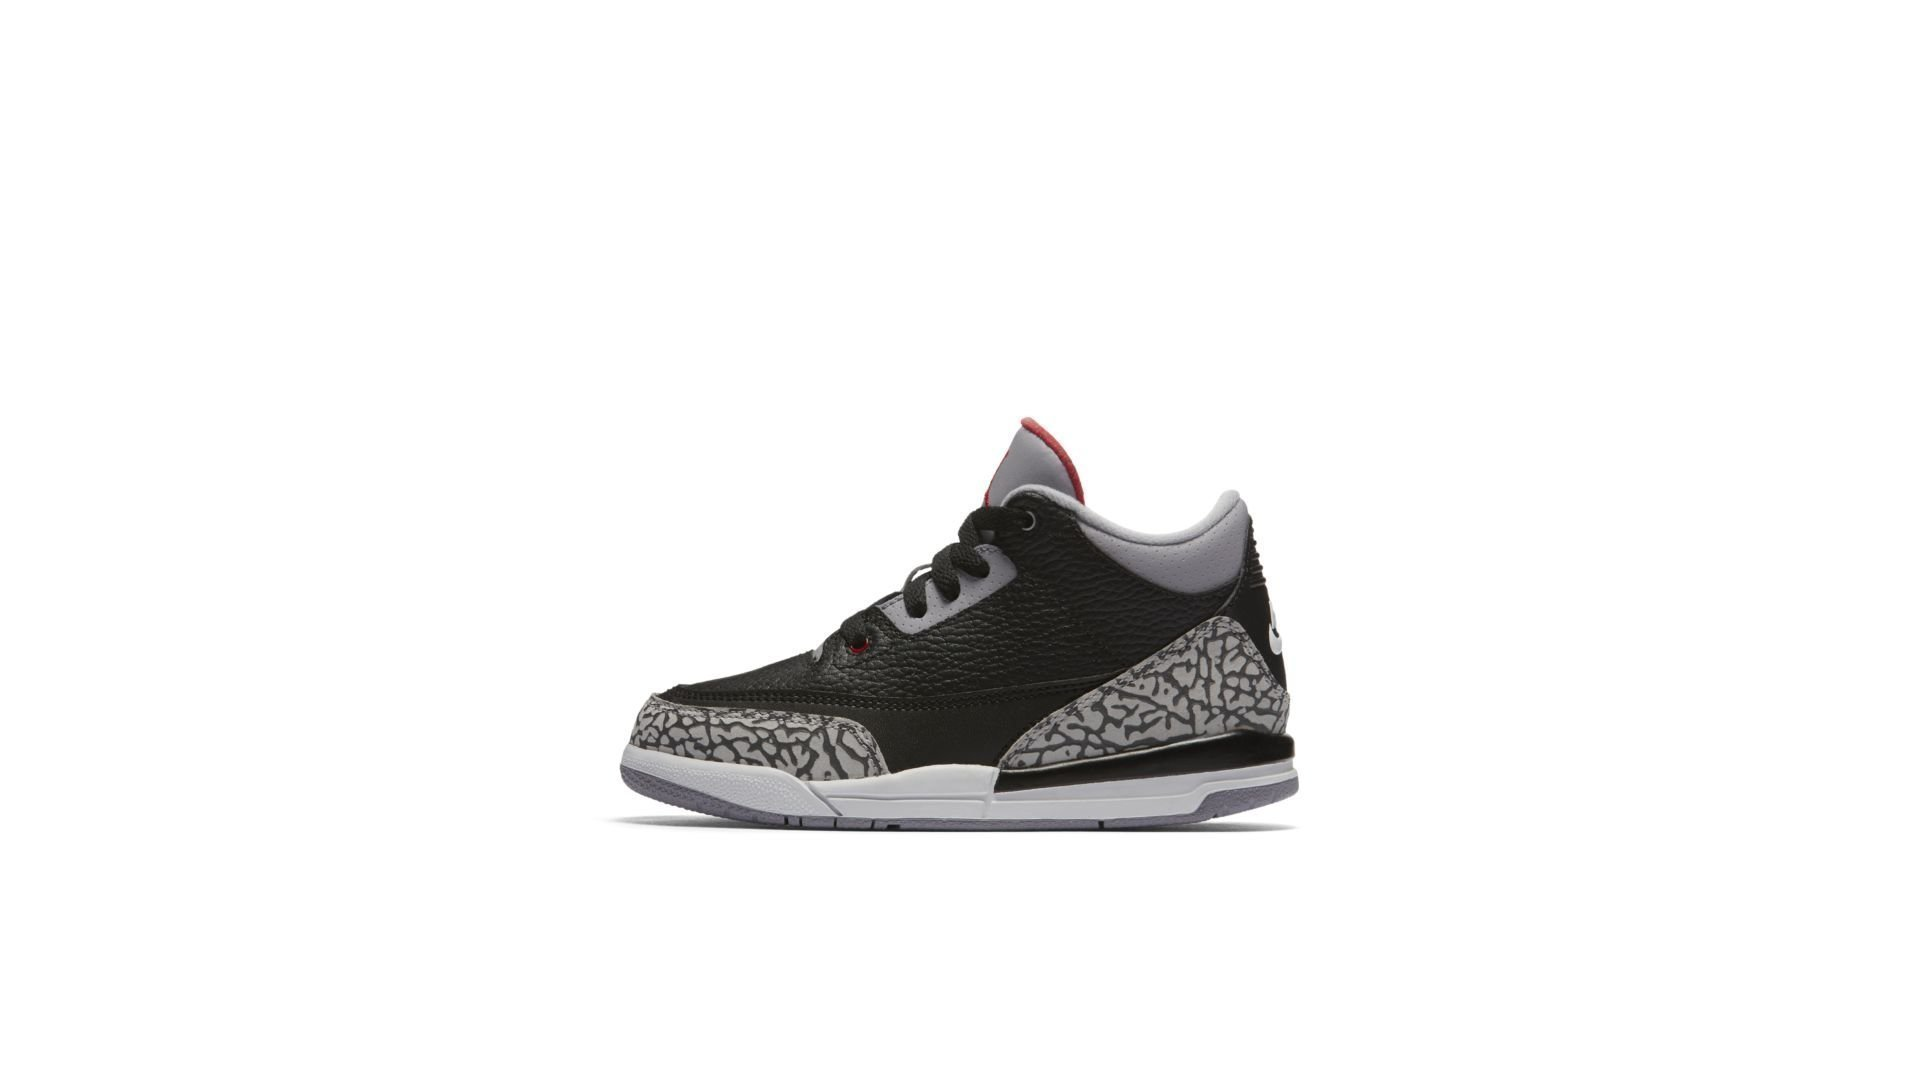 Jordan 3 Retro Black Cement 2018 (PS) (429487-021)